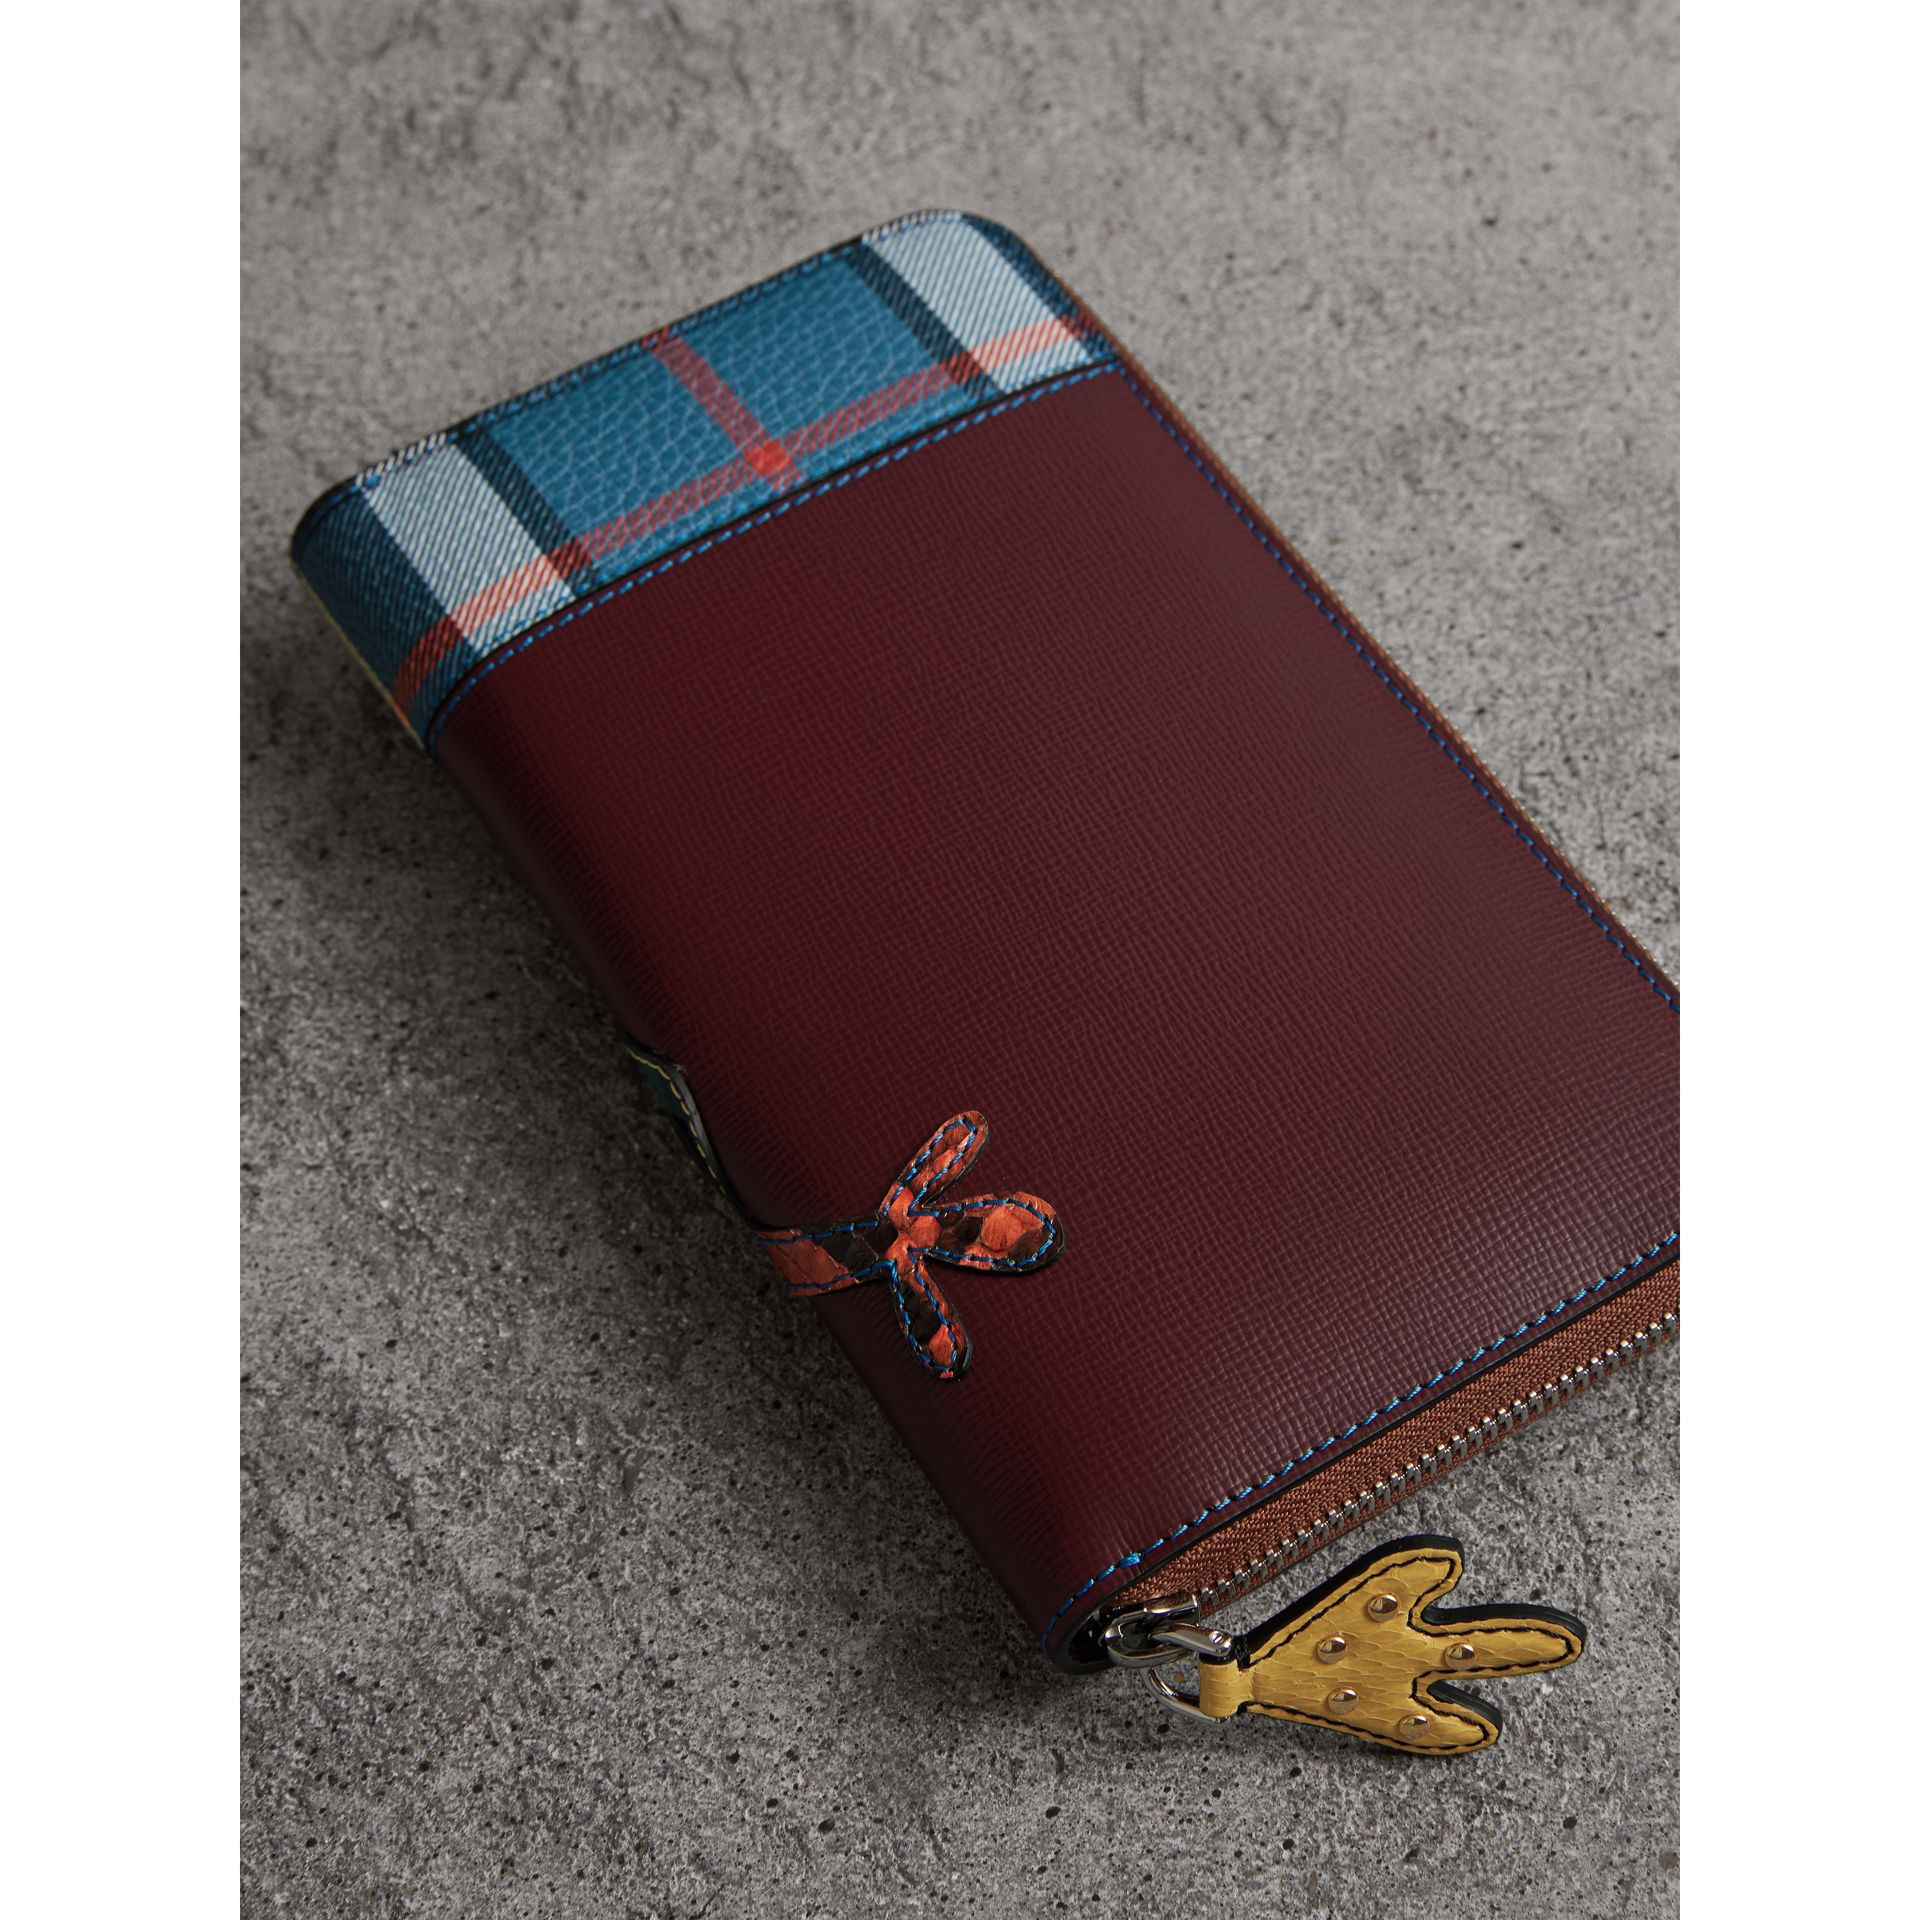 Creature Appliqué Leather Ziparound Wallet in Burgundy Red - Men | Burberry Singapore - gallery image 2